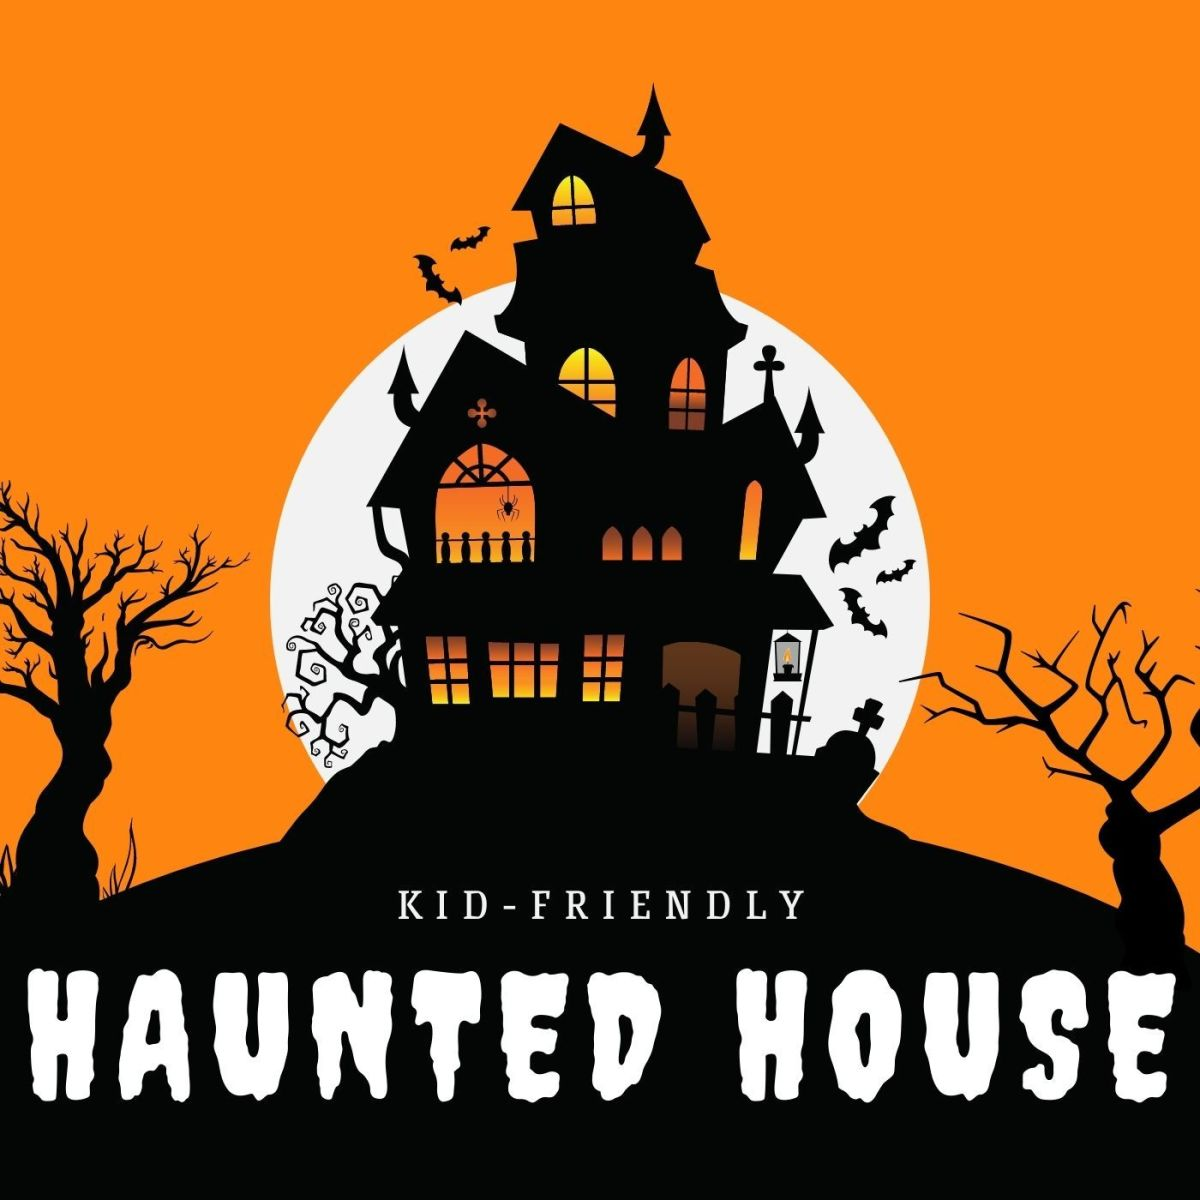 Follow these steps for a haunted house that your kids will love!